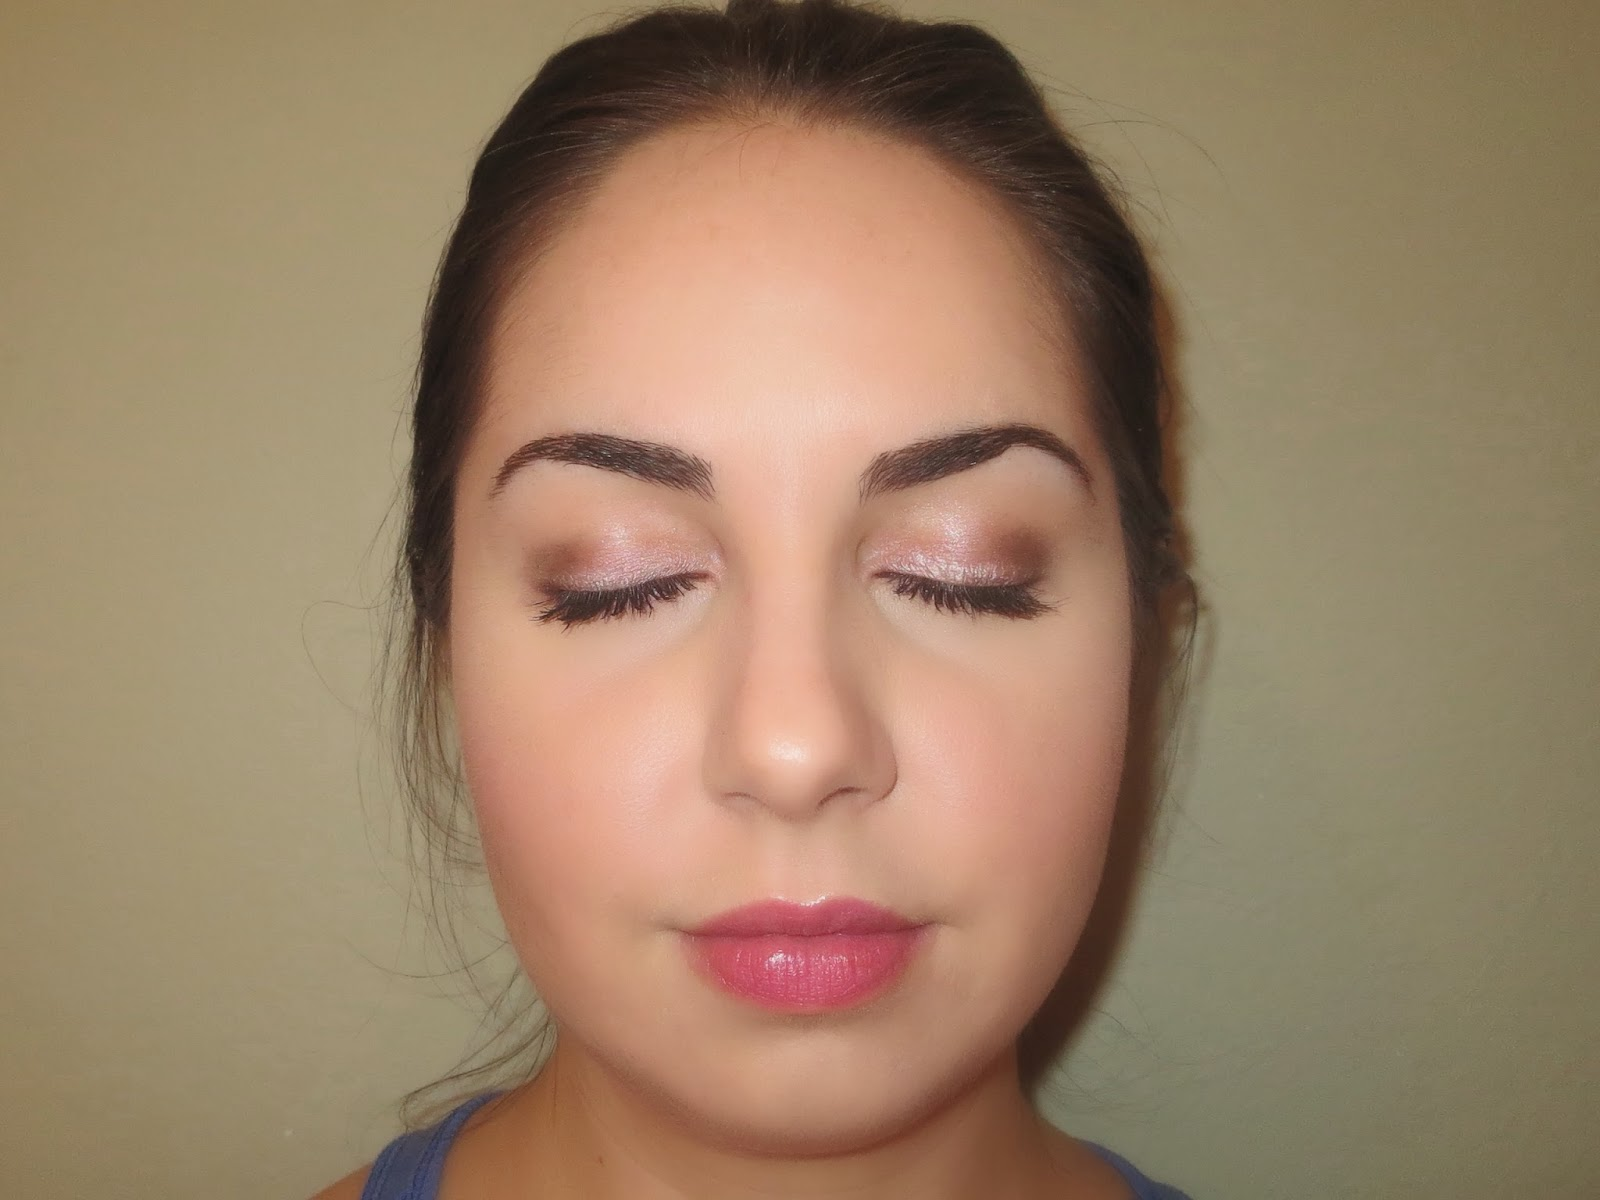 a picture of a soft romantic makeup look